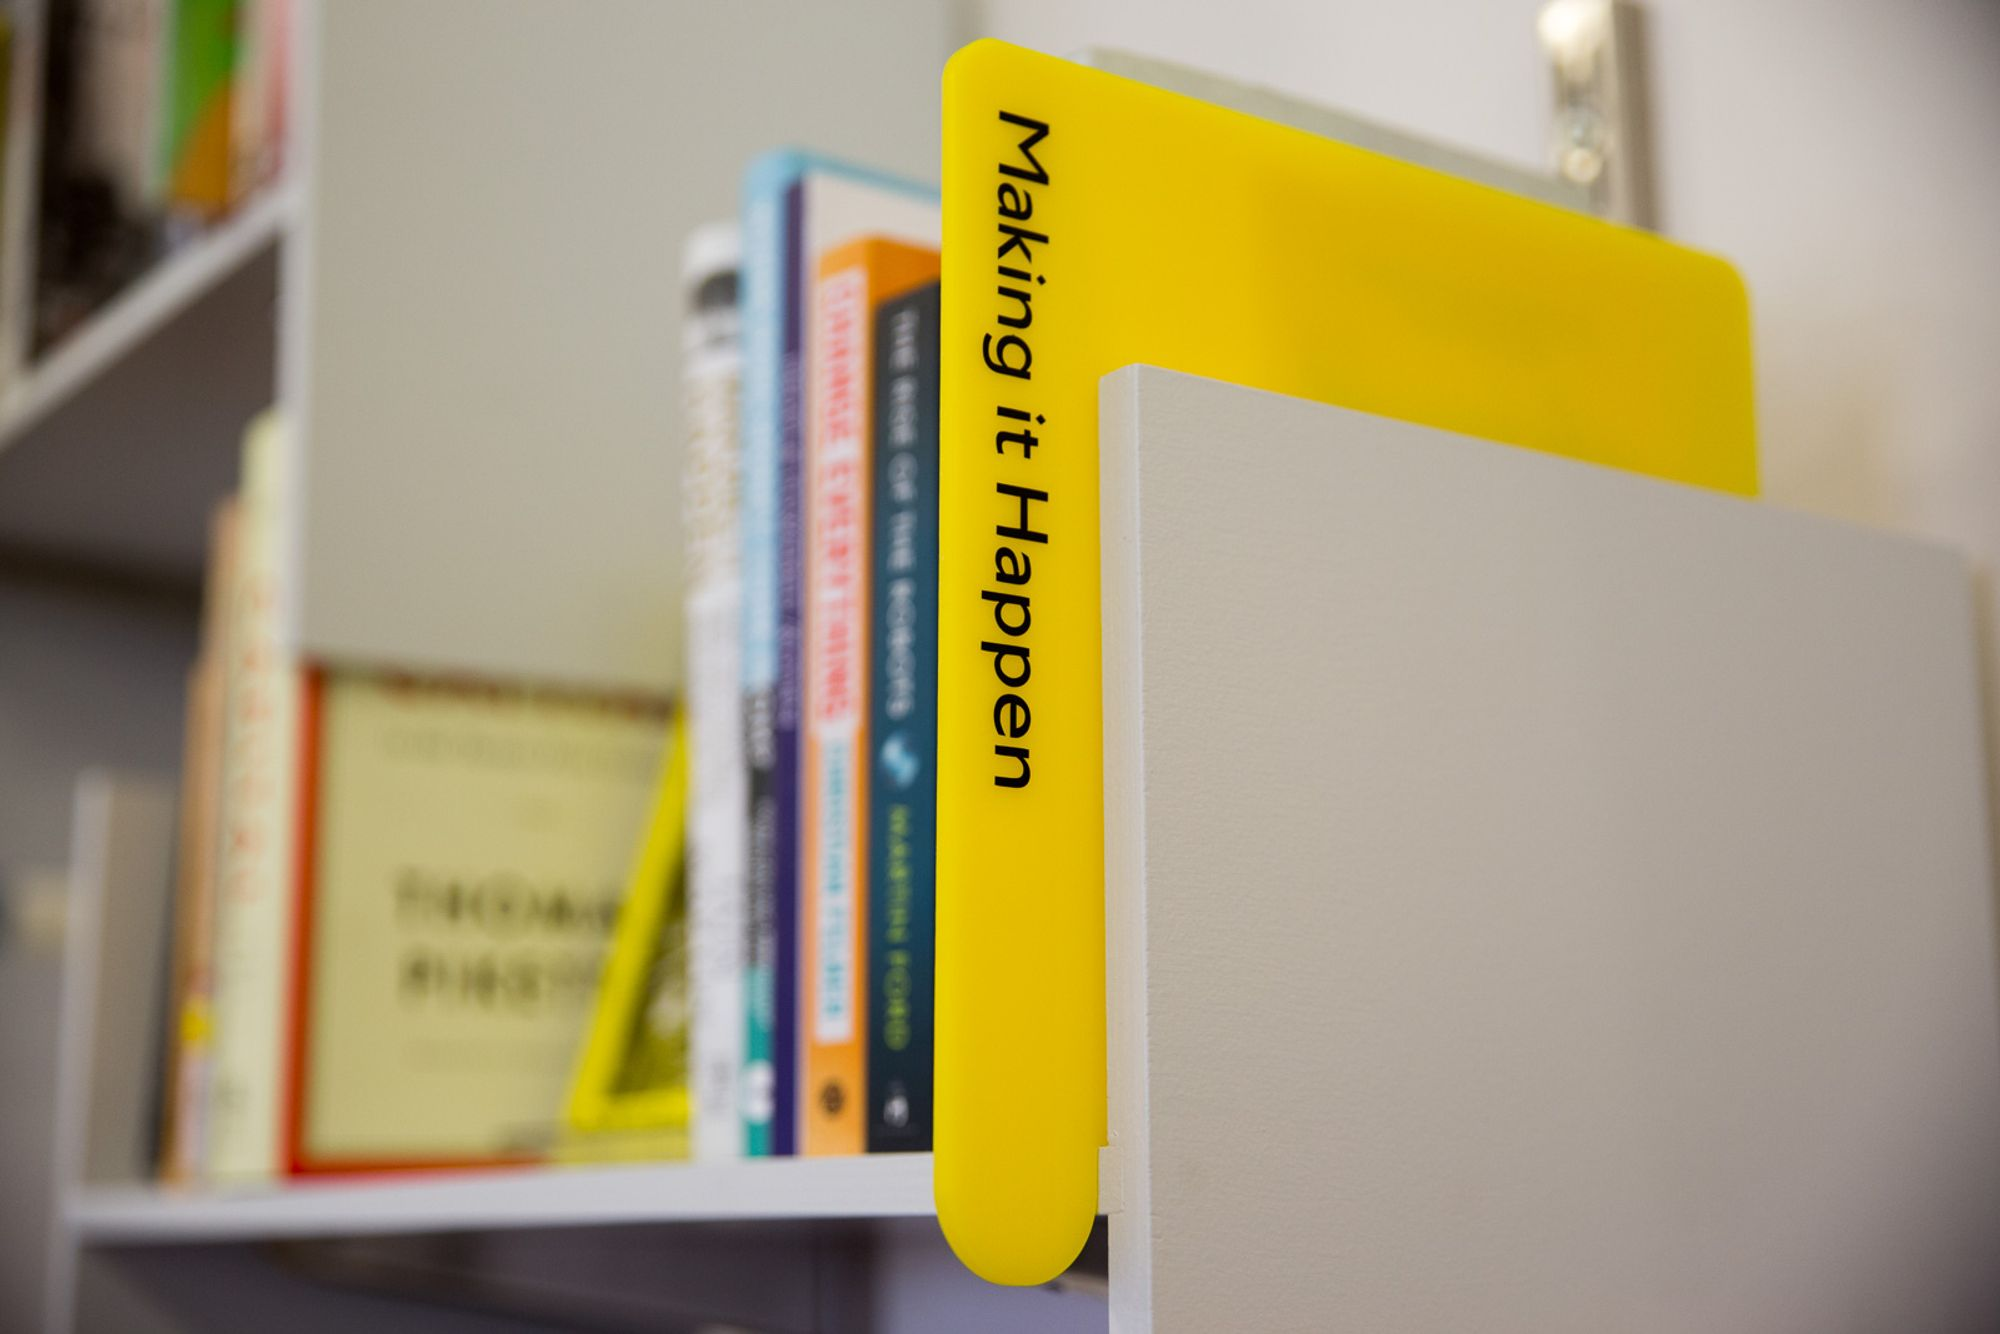 A grey bookshelf with a yellow divider with the words 'Making it Happen' and books in the background on the shelves, blurred out